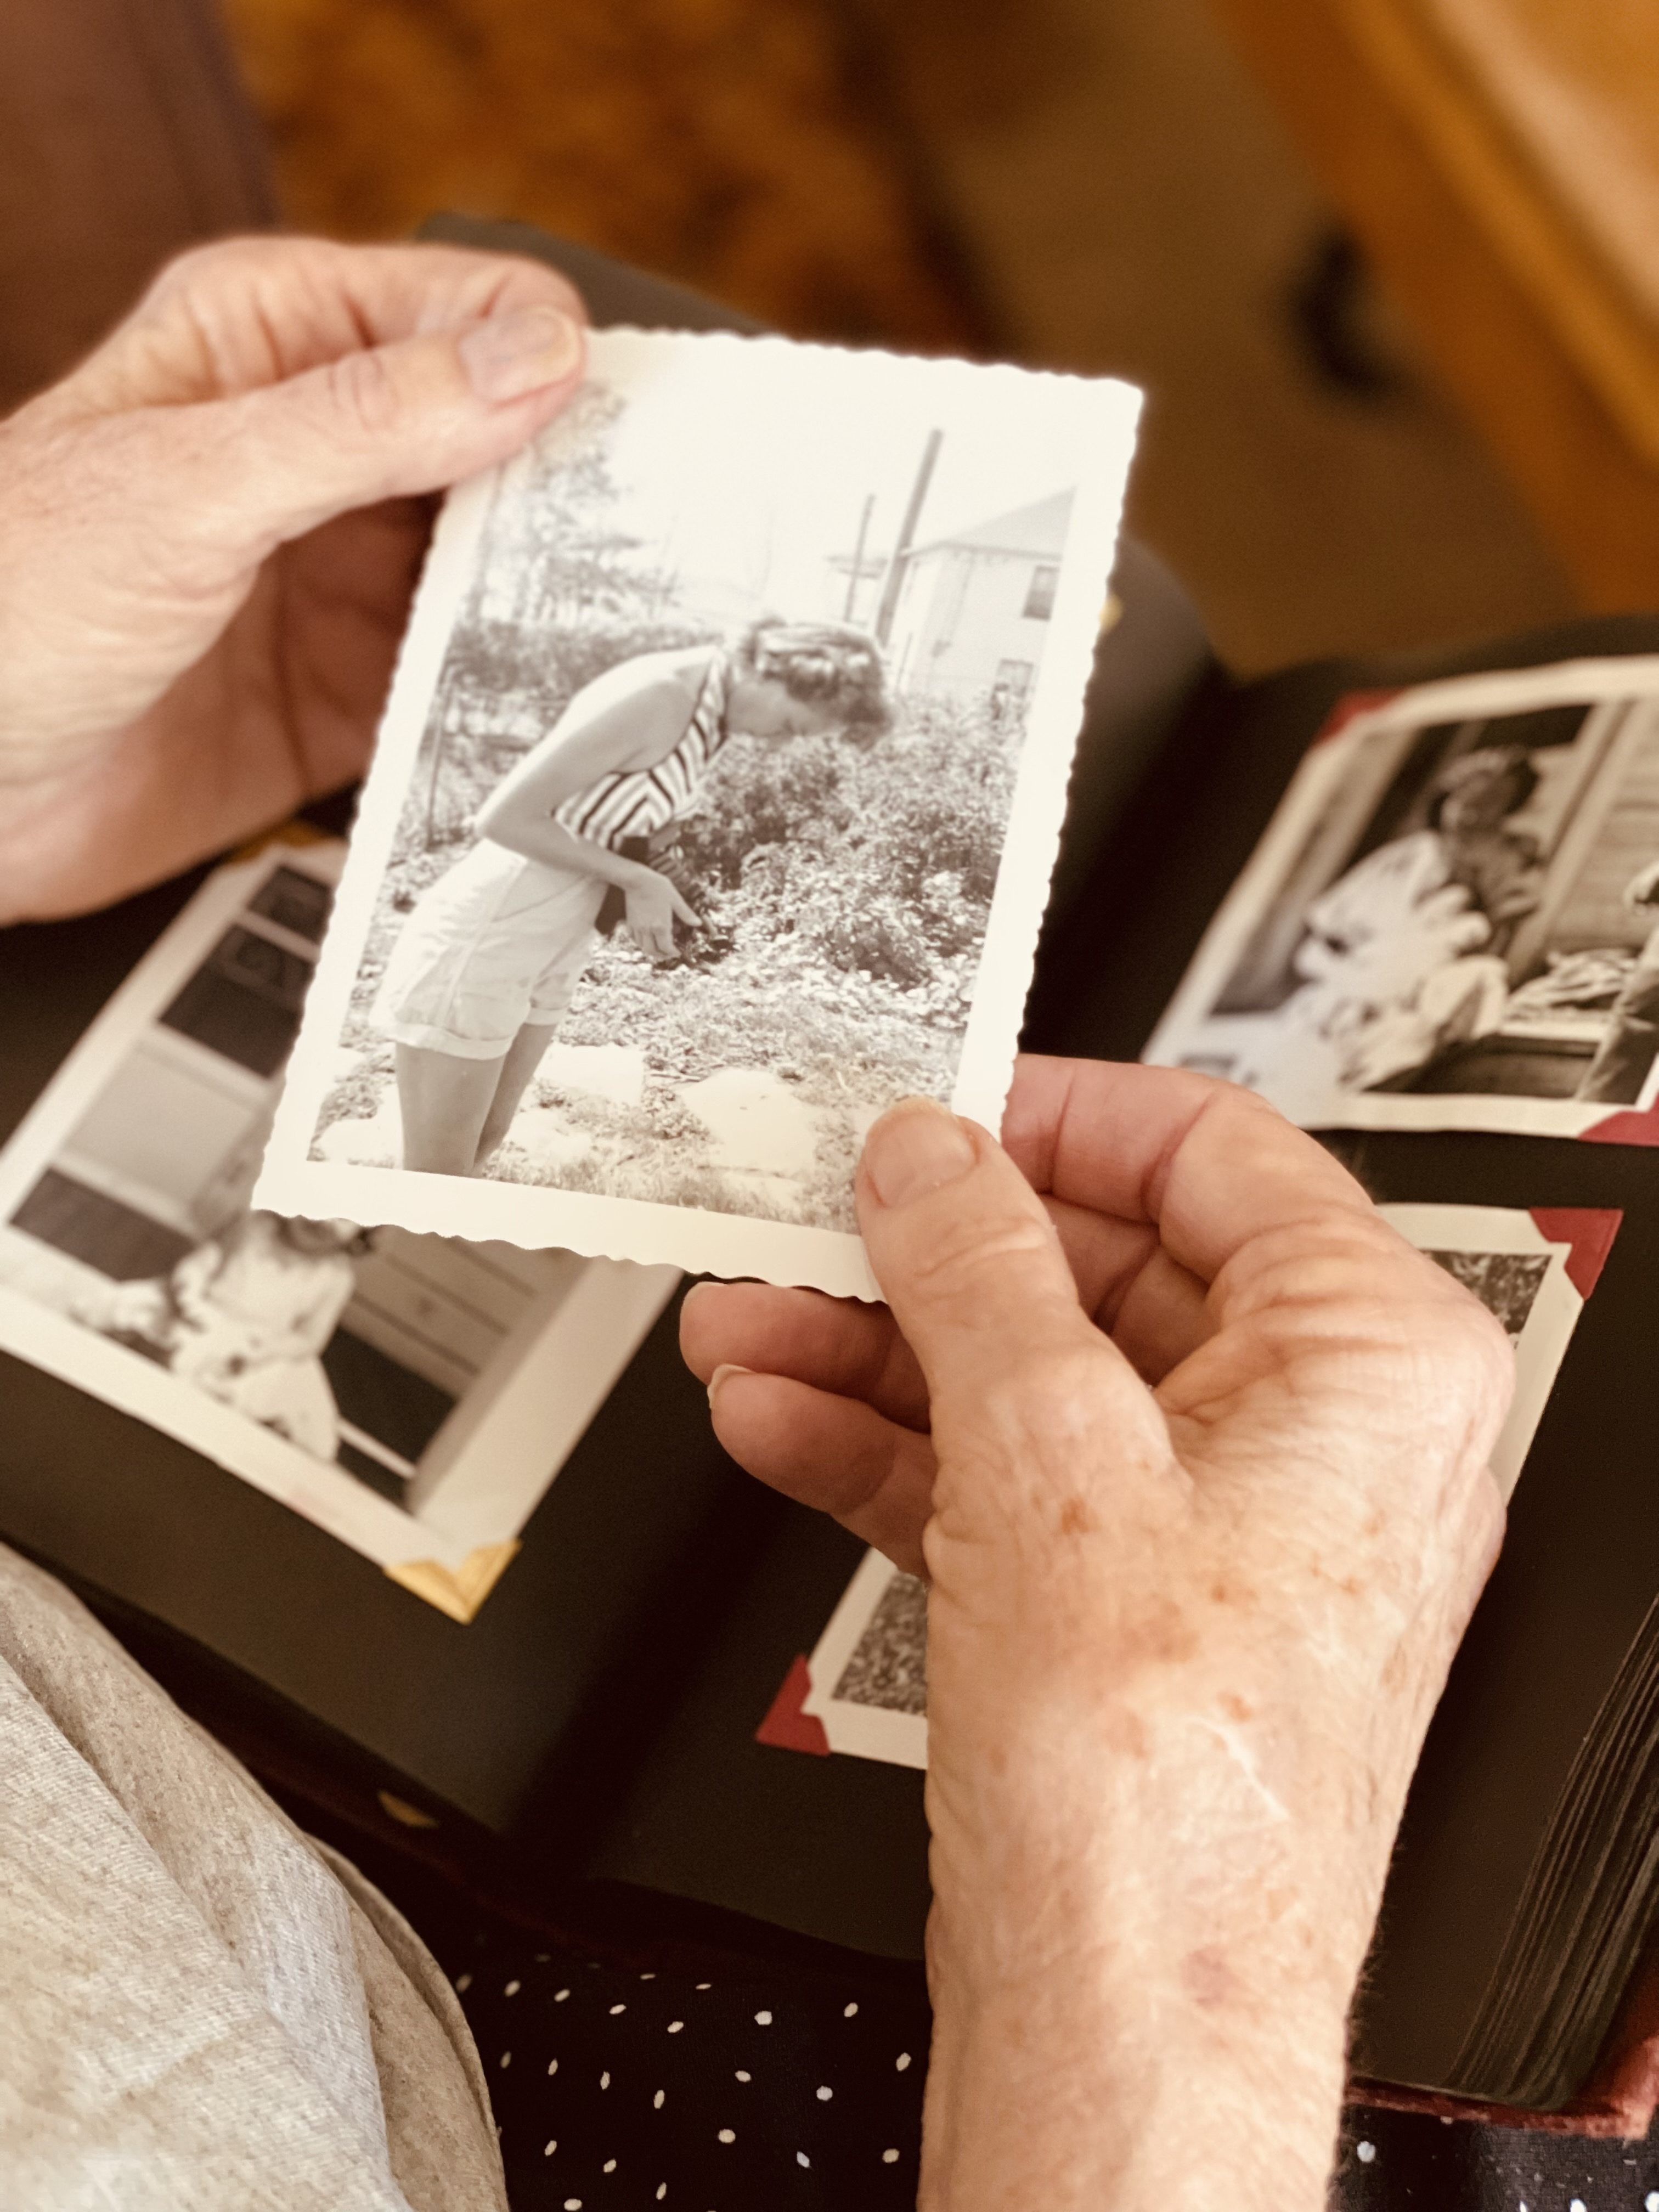 elderly-woman-holding-old-black-and-white-framed-photo-of-her-grandmother-reminiscing-about-family-tree